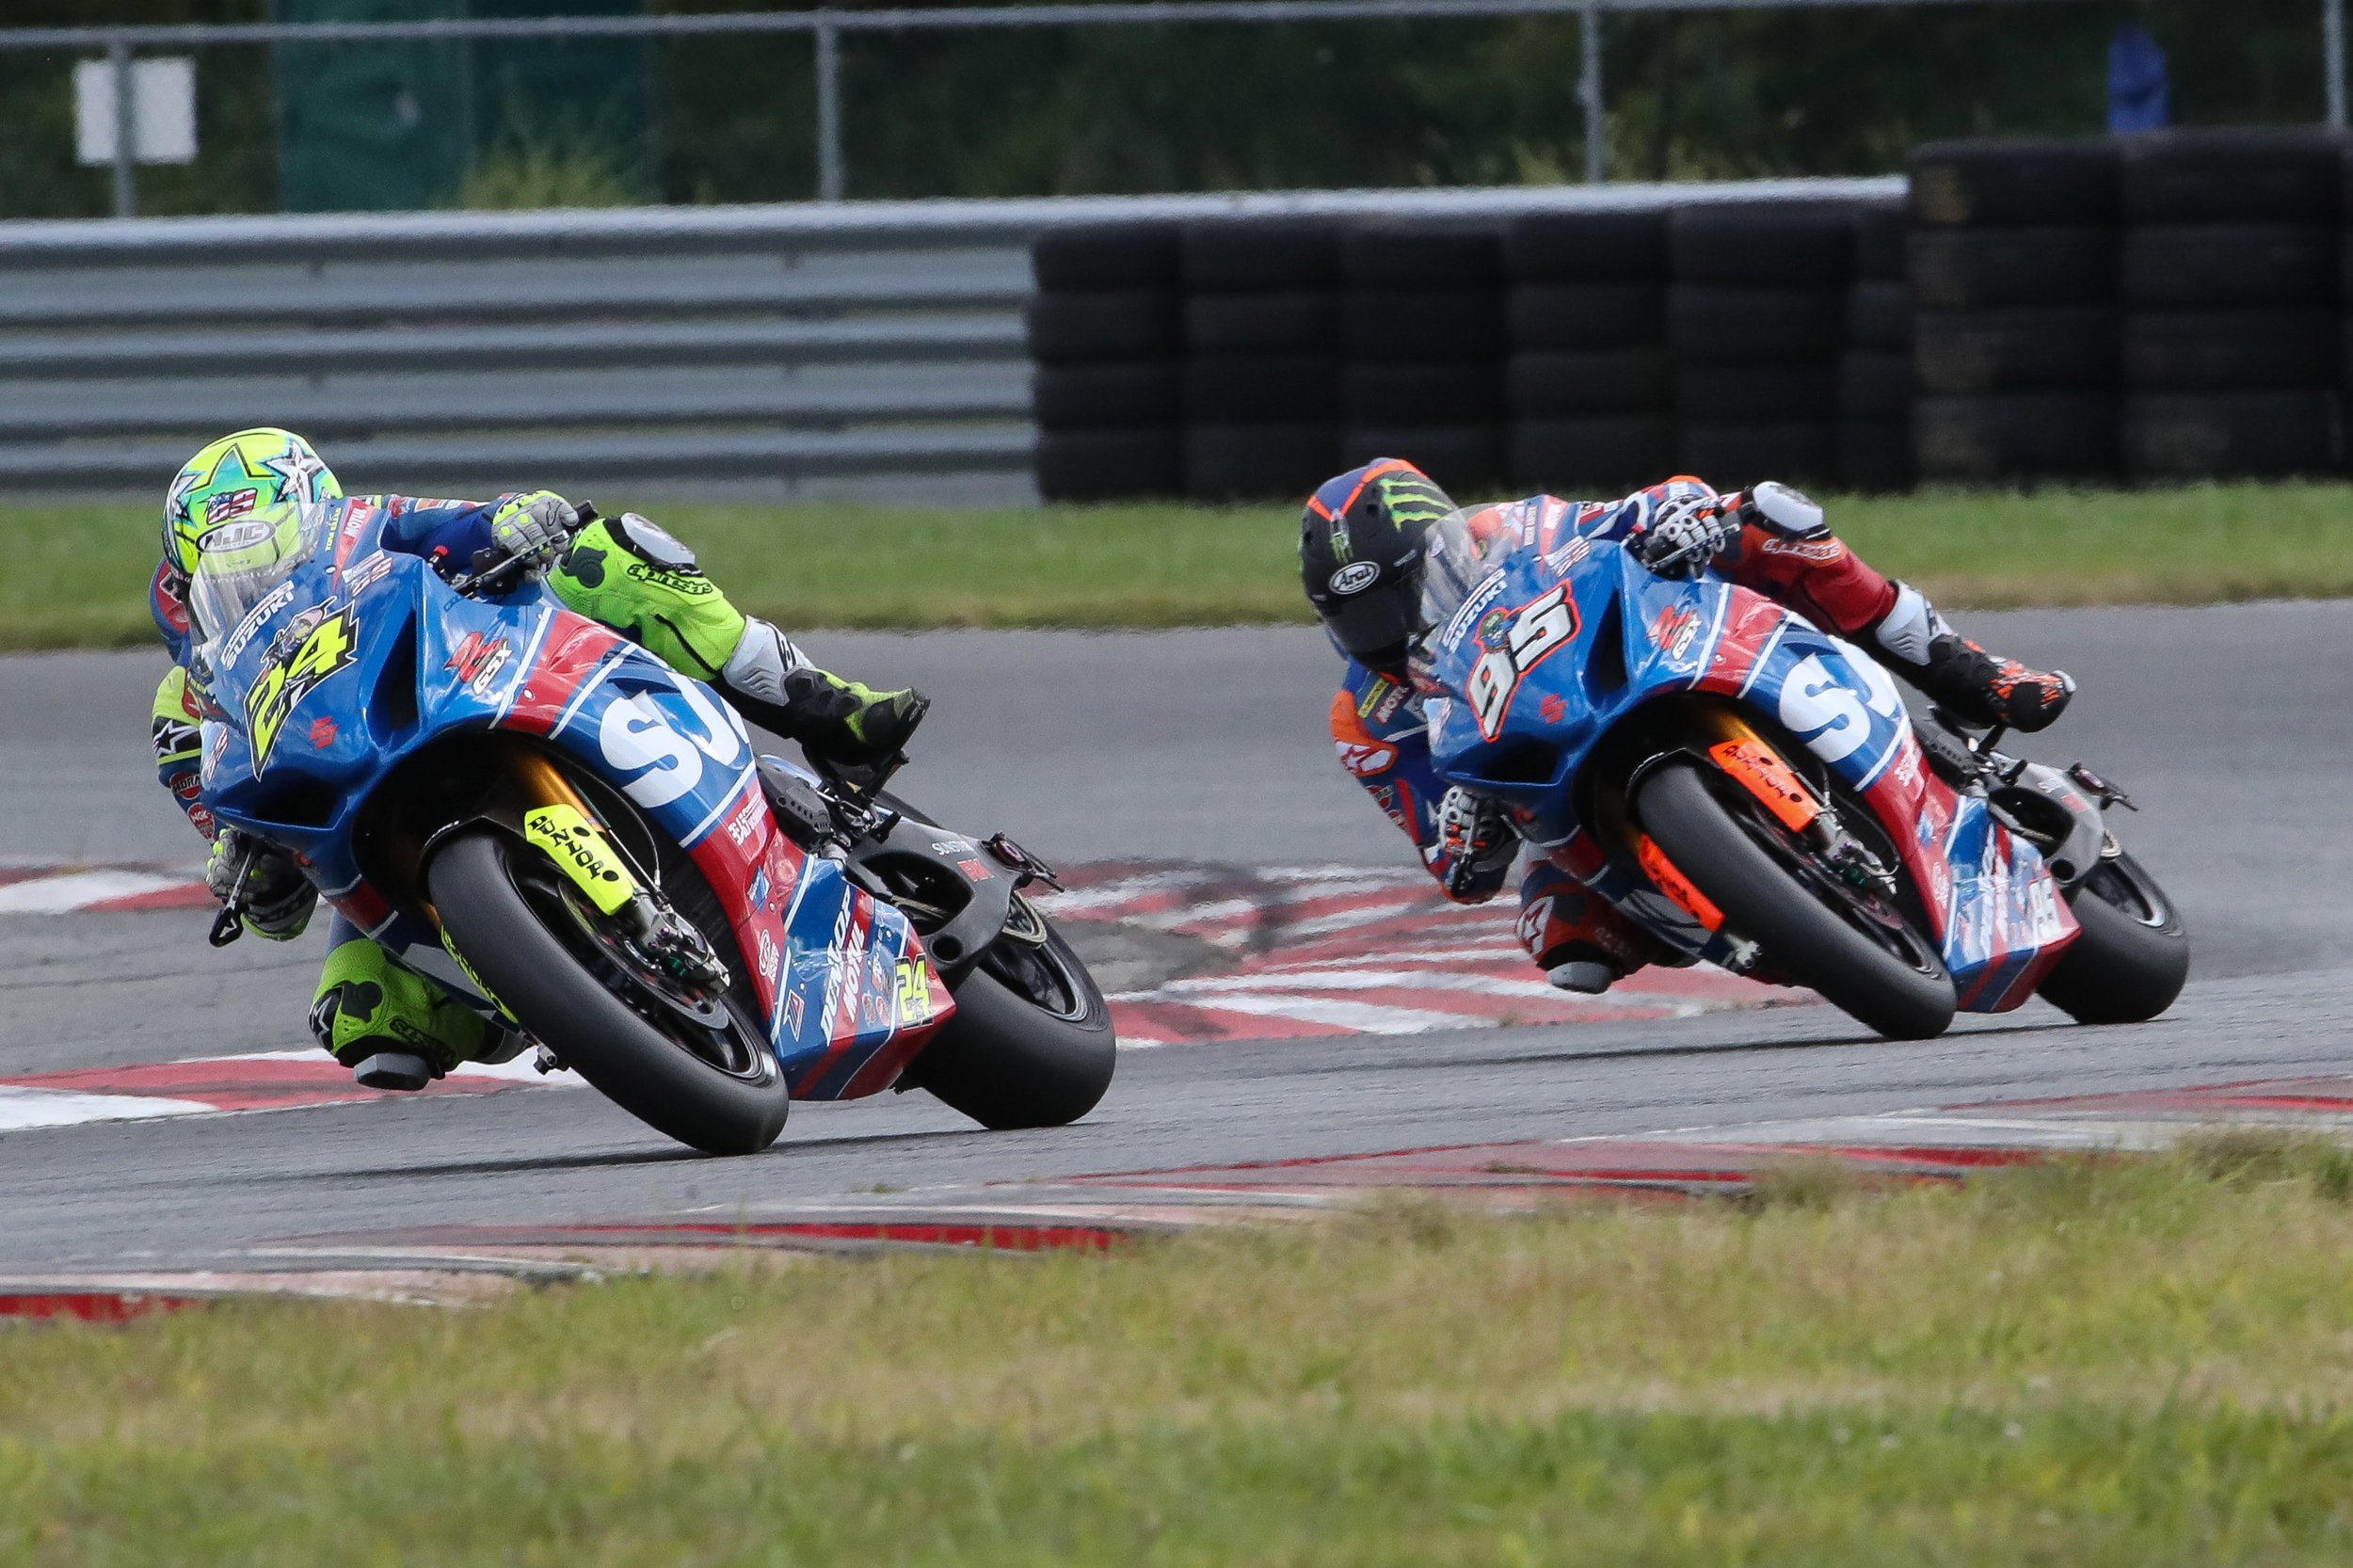 Sunday's MotoAmerica Superbike Race 2 came down to a last-lap pass made by Toni Elias on Yoshimura Suzuki teammate Roger Hayden, who led all but the final lap. Elias' victory was his 10th of the season. (Photo by Brian J. Nelson)